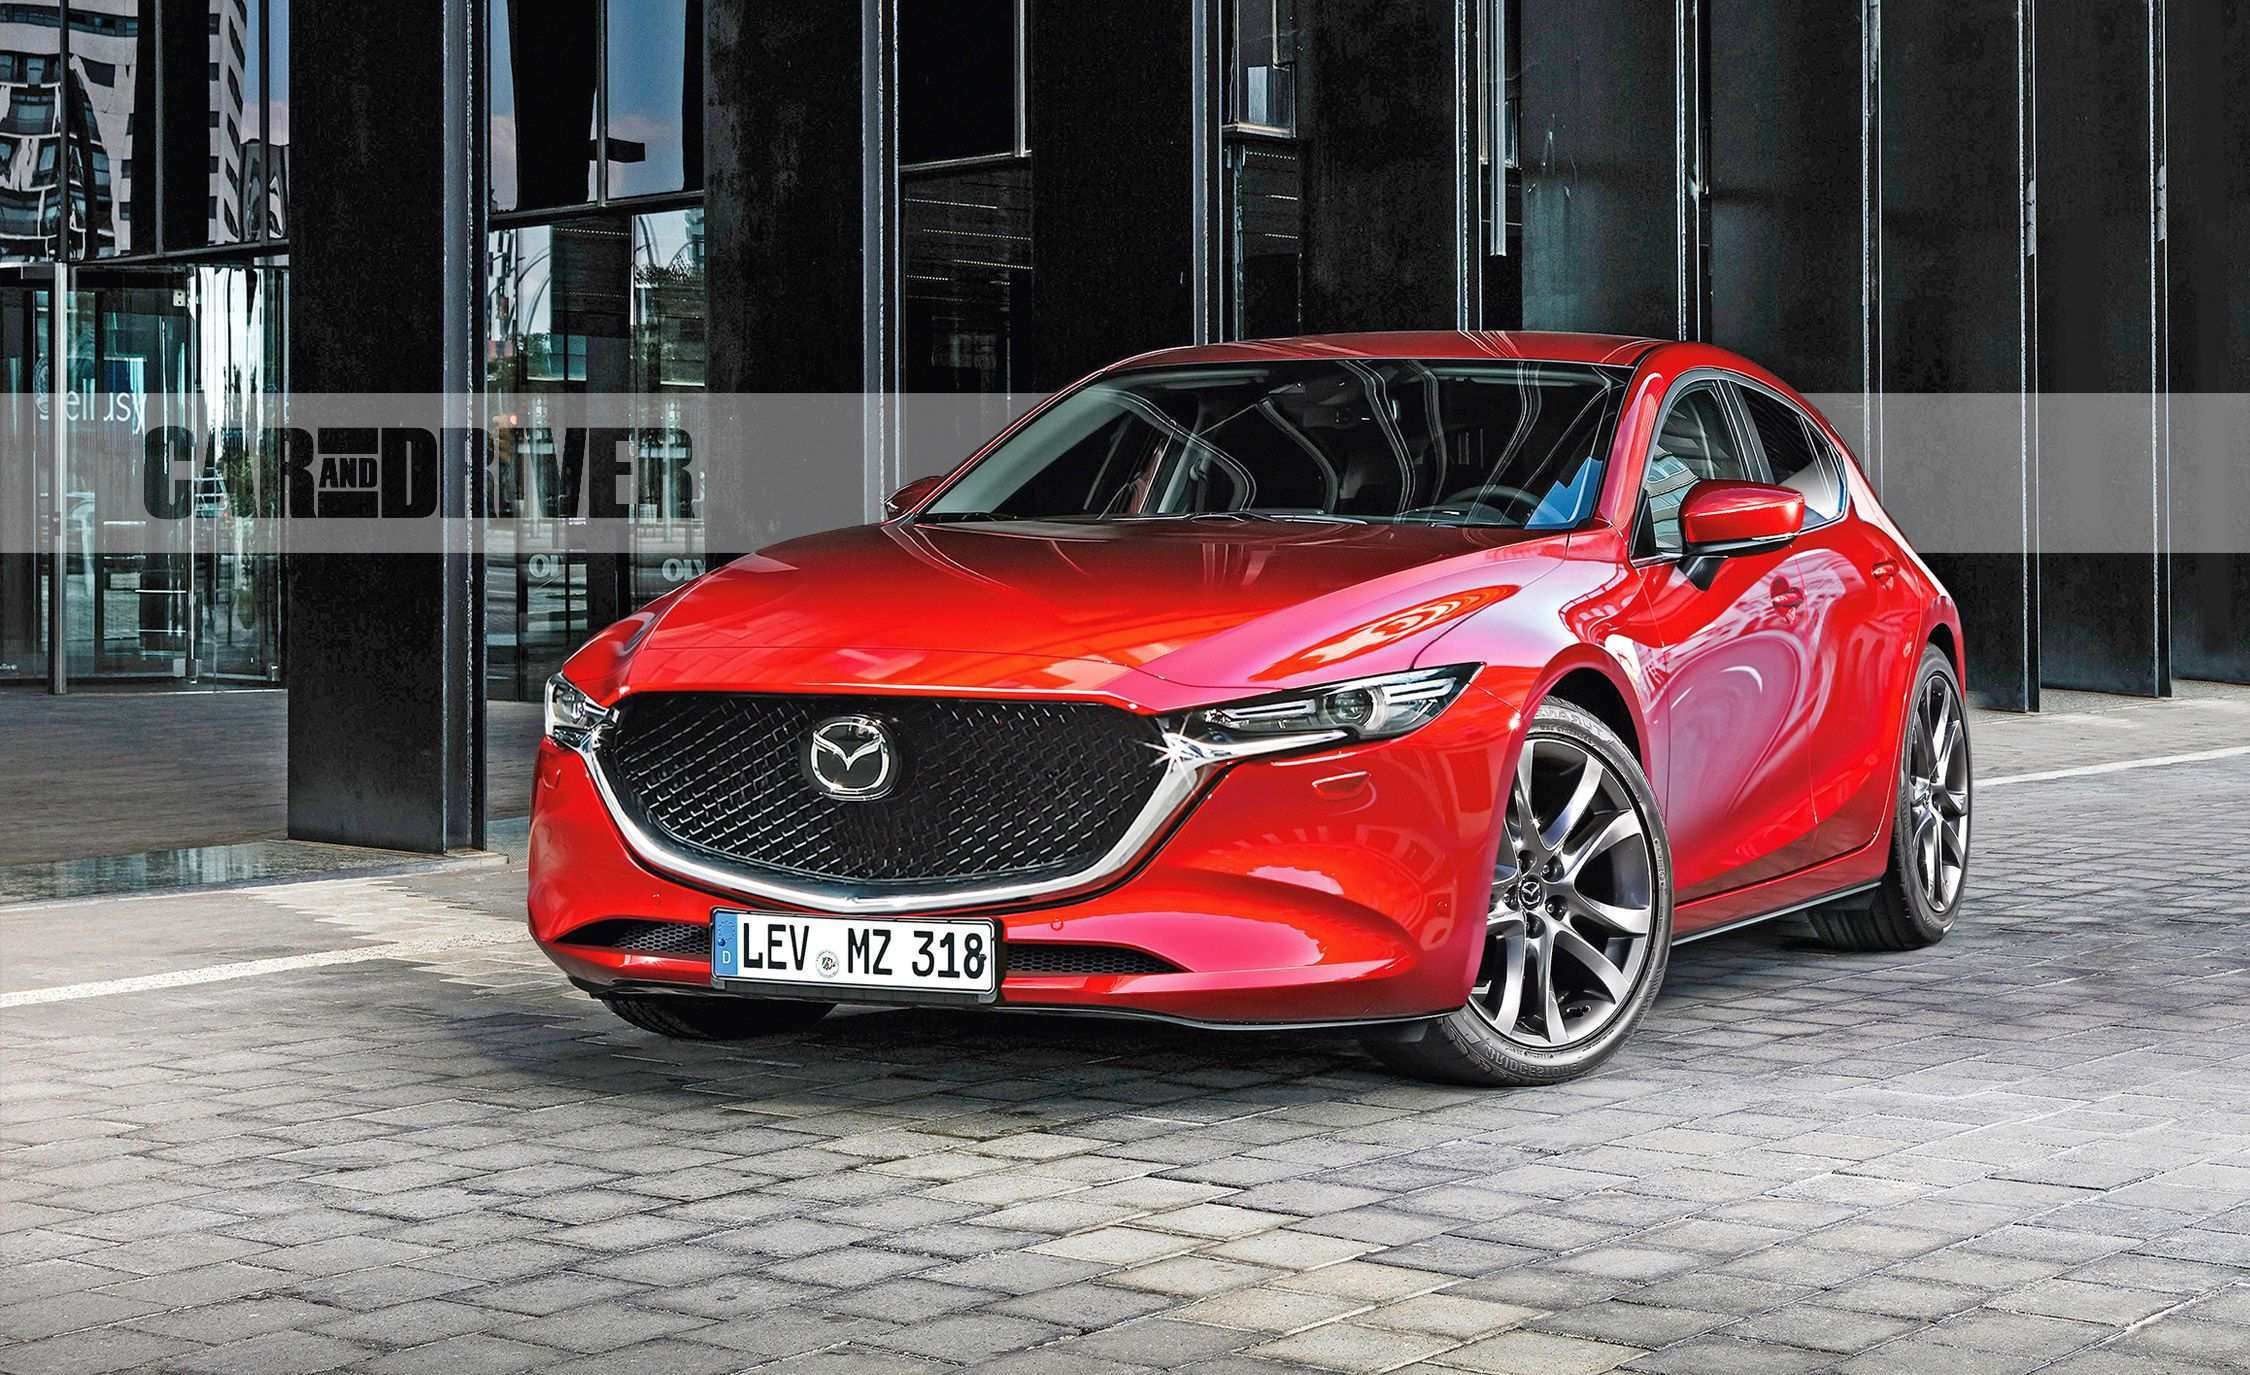 54 Concept of Mazda 3 Gt 2020 Overview with Mazda 3 Gt 2020